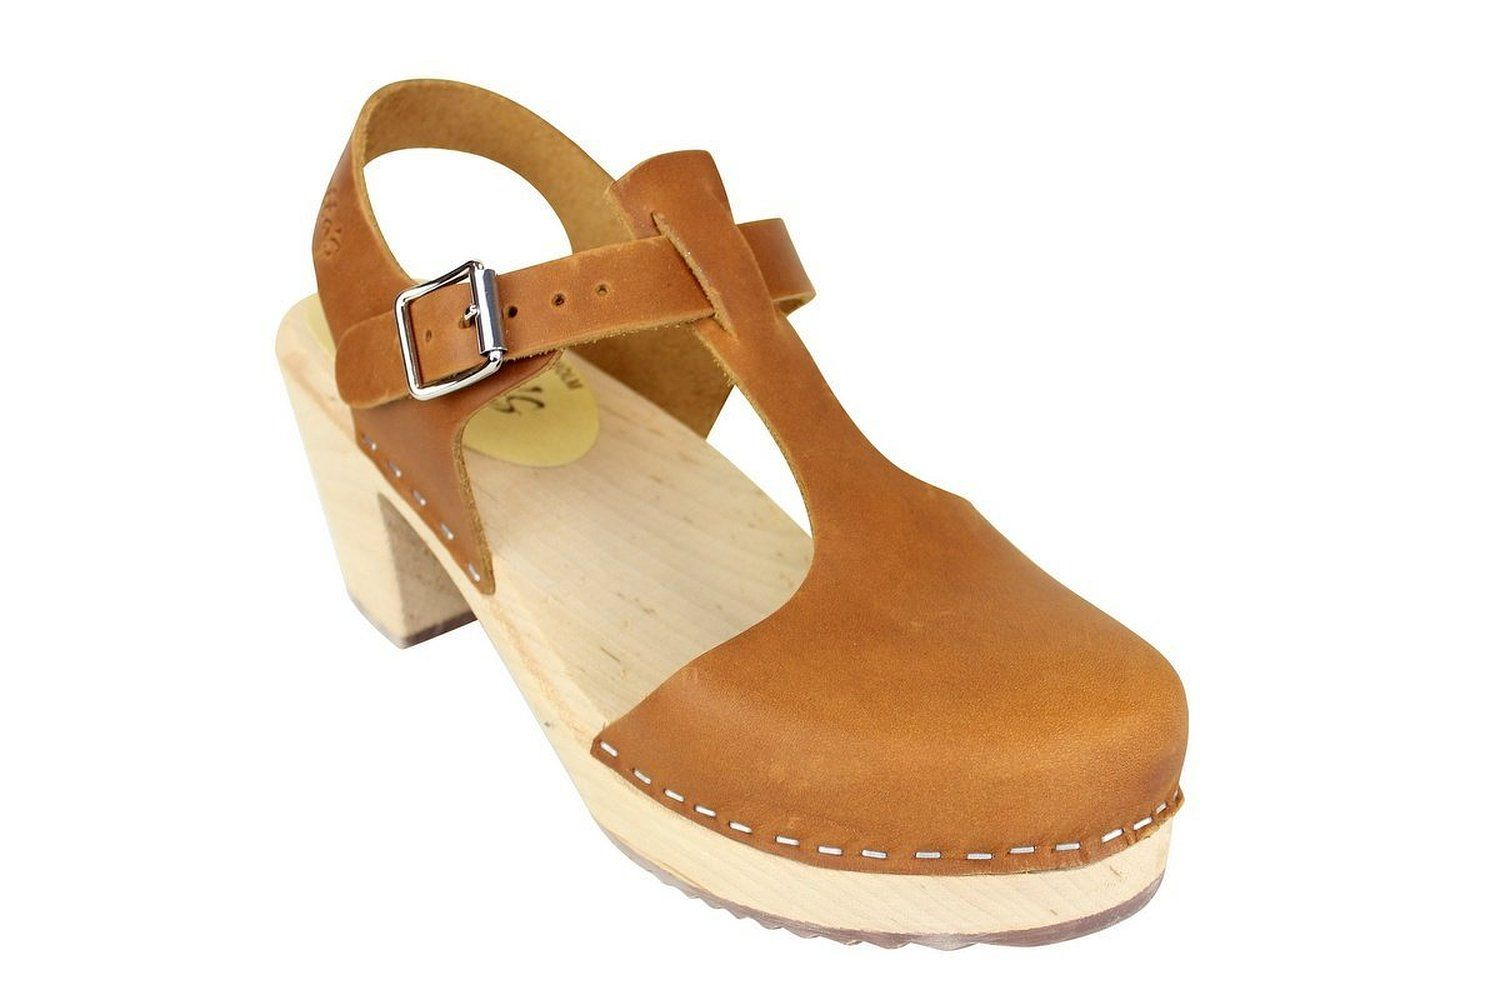 Lotta From Stockholm Highwood T-Bar Clogs in Brown Oiled Nubuck - only $95 on Amazon!!!